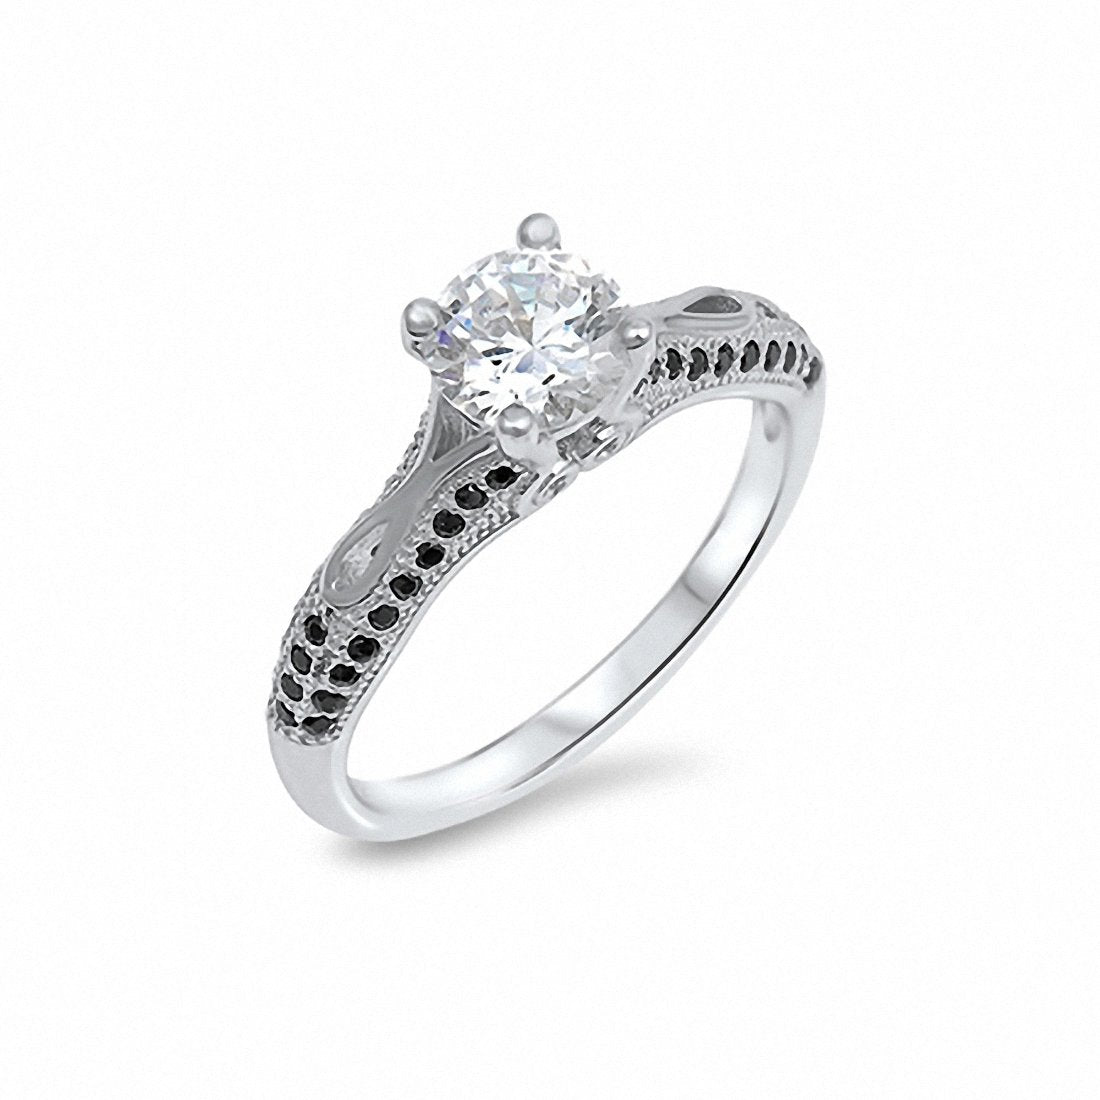 Solitaire Accent Engagement Ring Black White Cubic Zirconia 925 Sterling Silver Choose Color